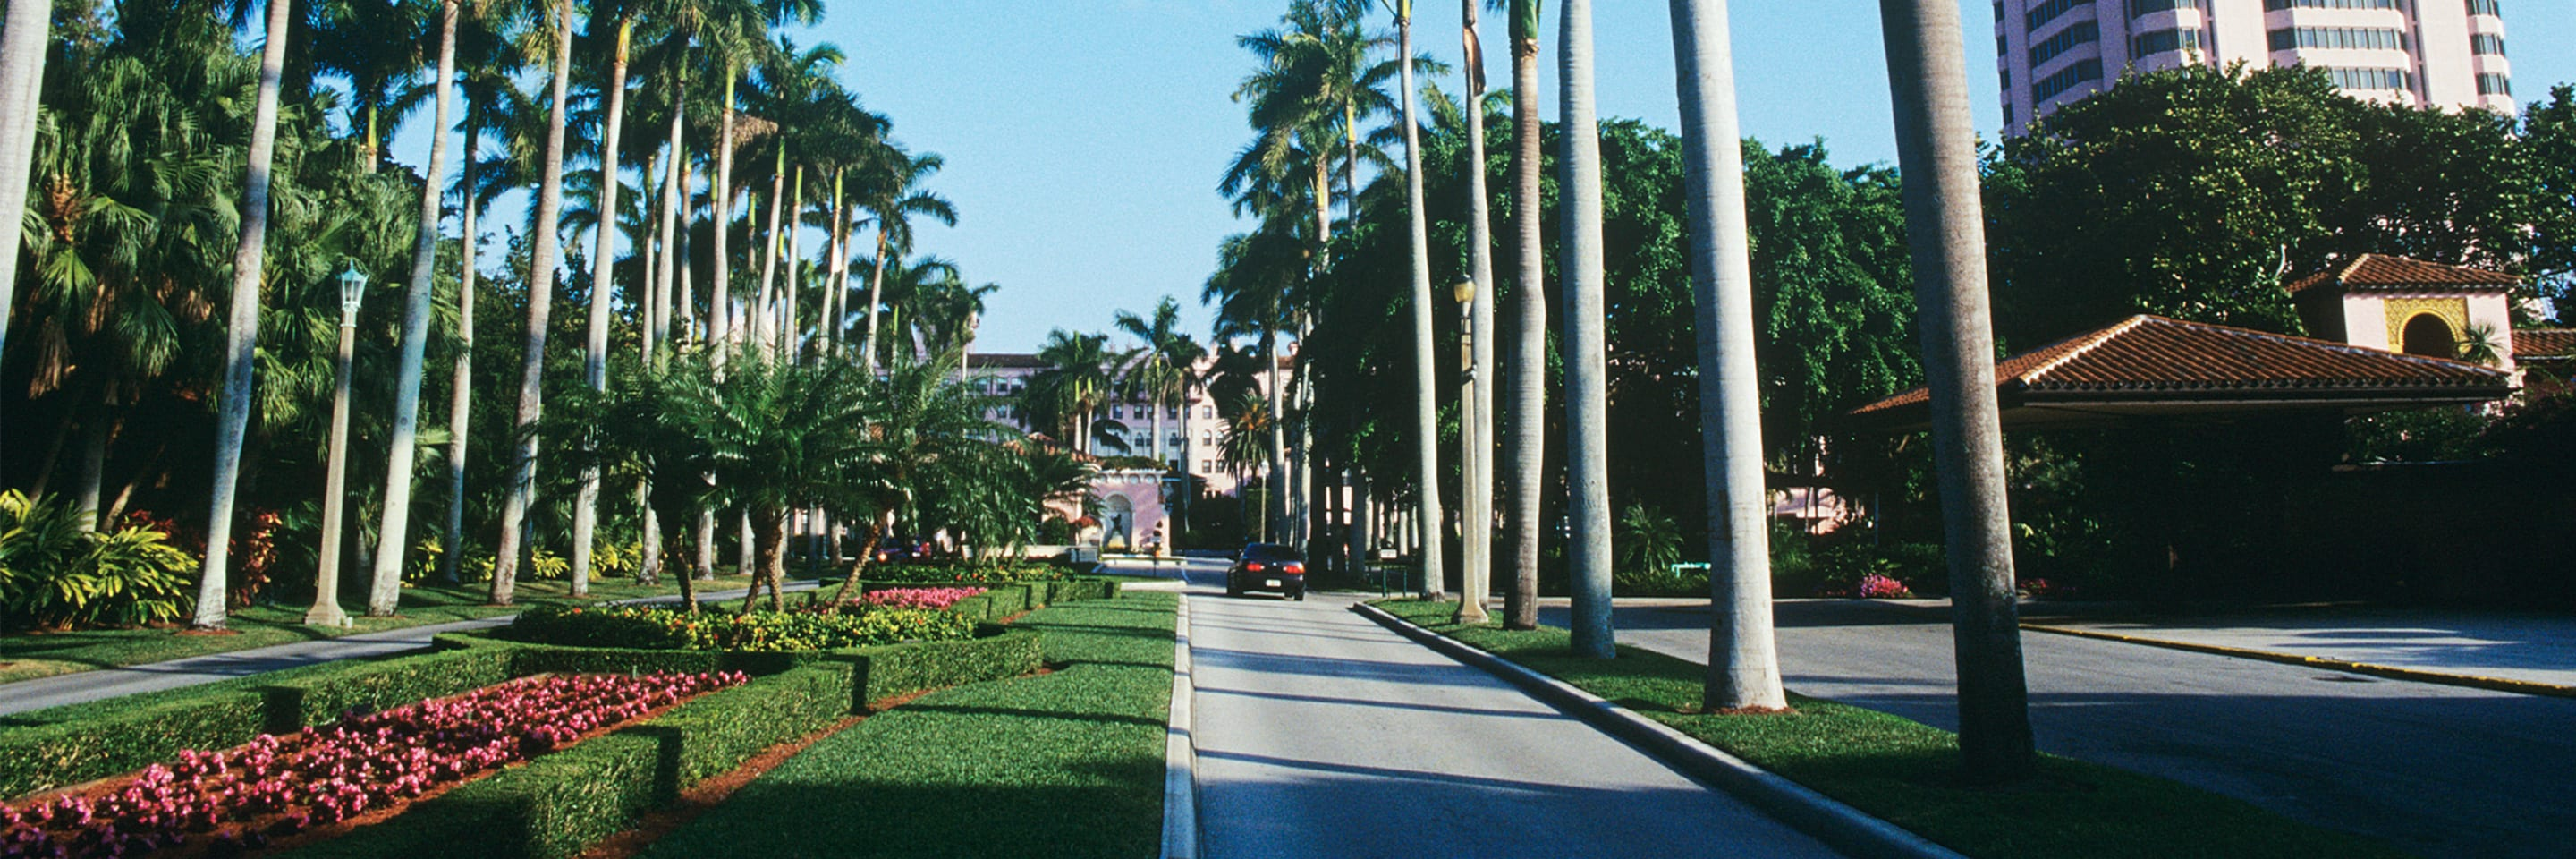 Hotels in Boca Raton